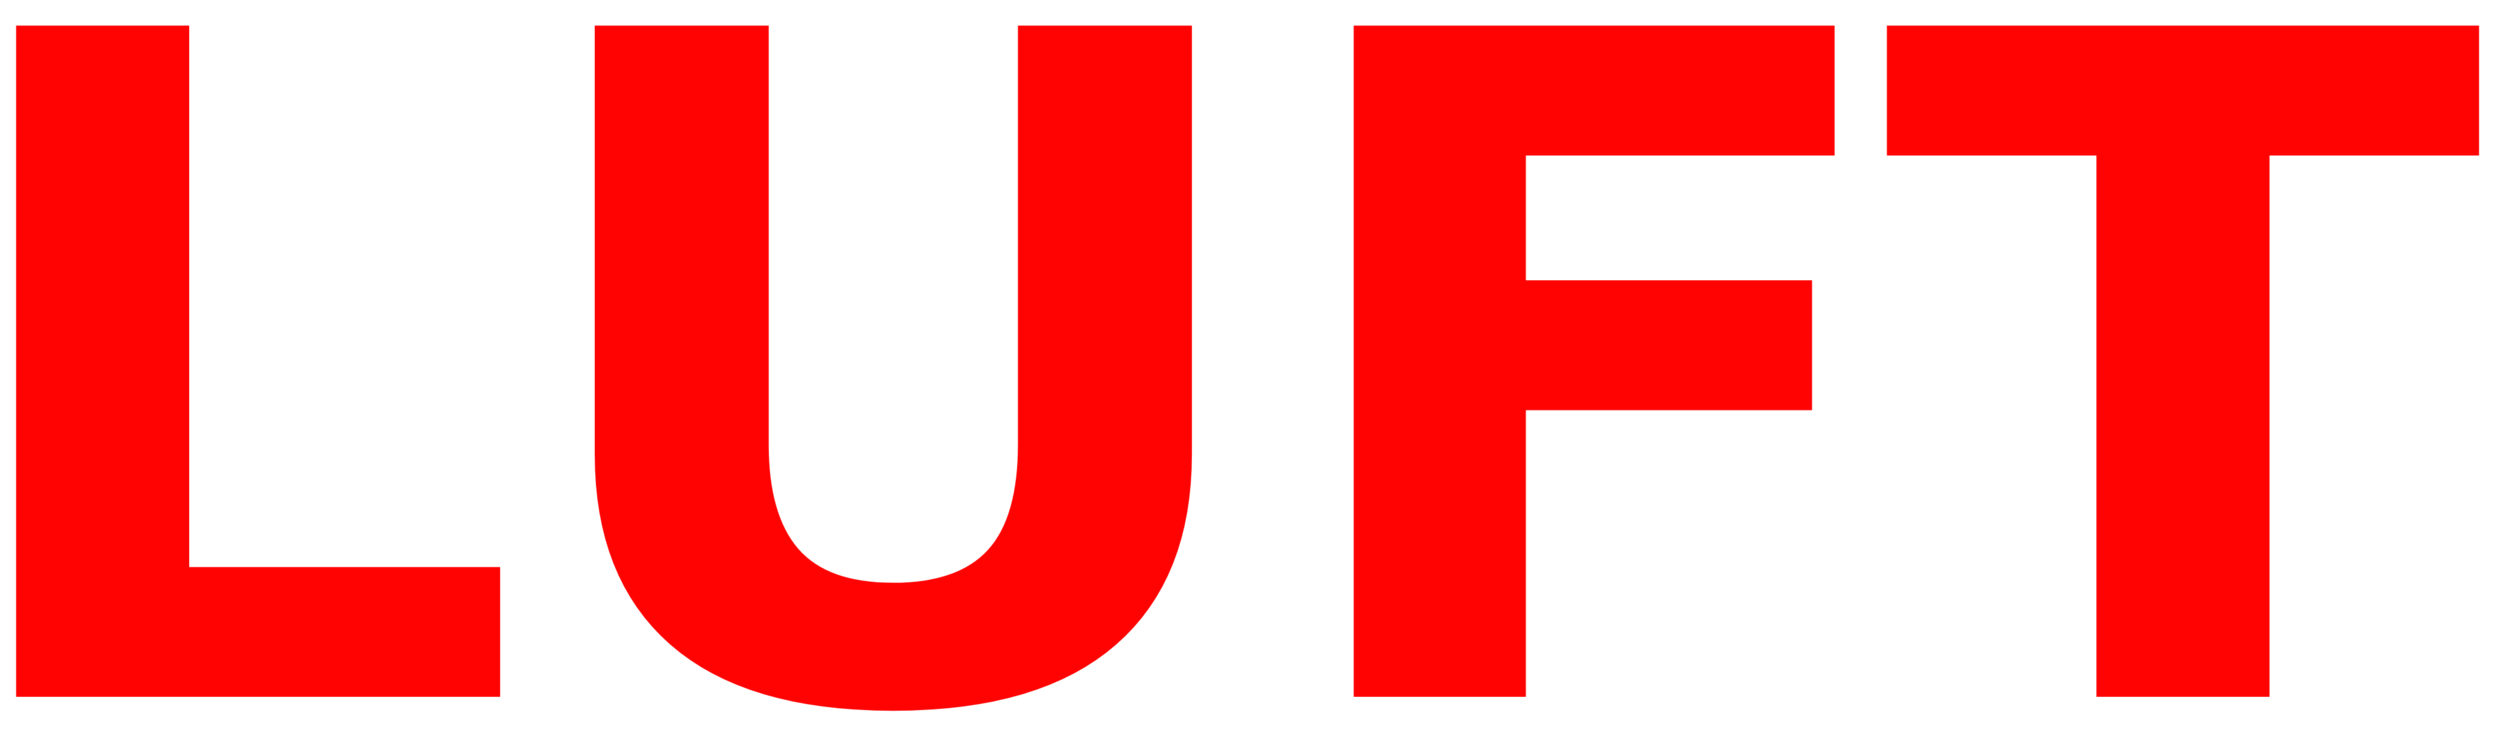 luft.net | Branded real estate news, insights, and analysis